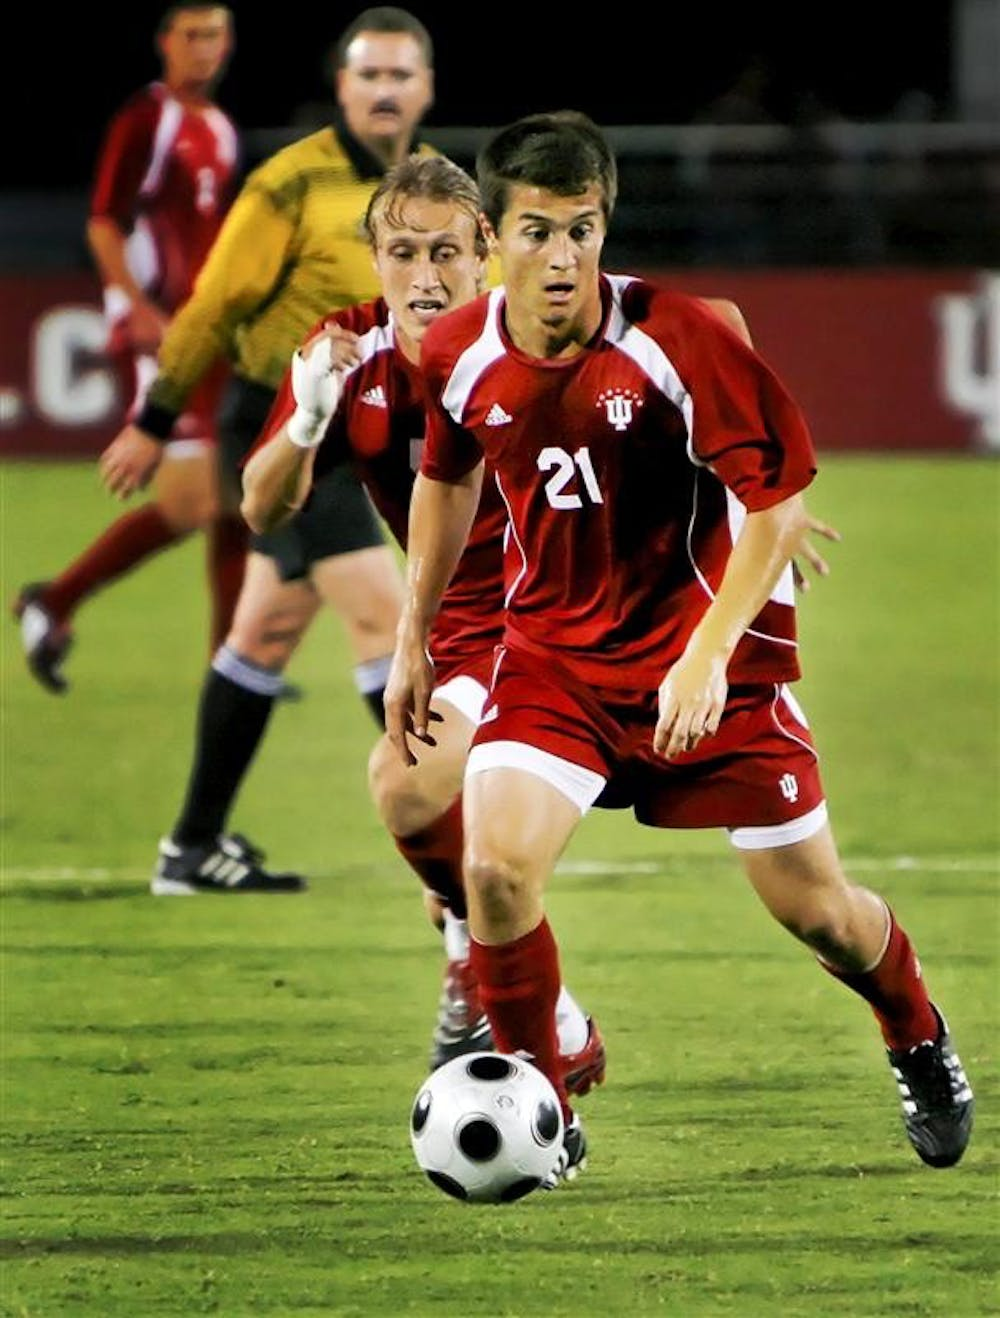 Sophomore midfielder Daniel Kelly moves the ball upfield against UC Santa Barbara Sept. 27 at Bill Armstrong Stadium. Kelly and the Hoosiers face Notre Dame tonight.